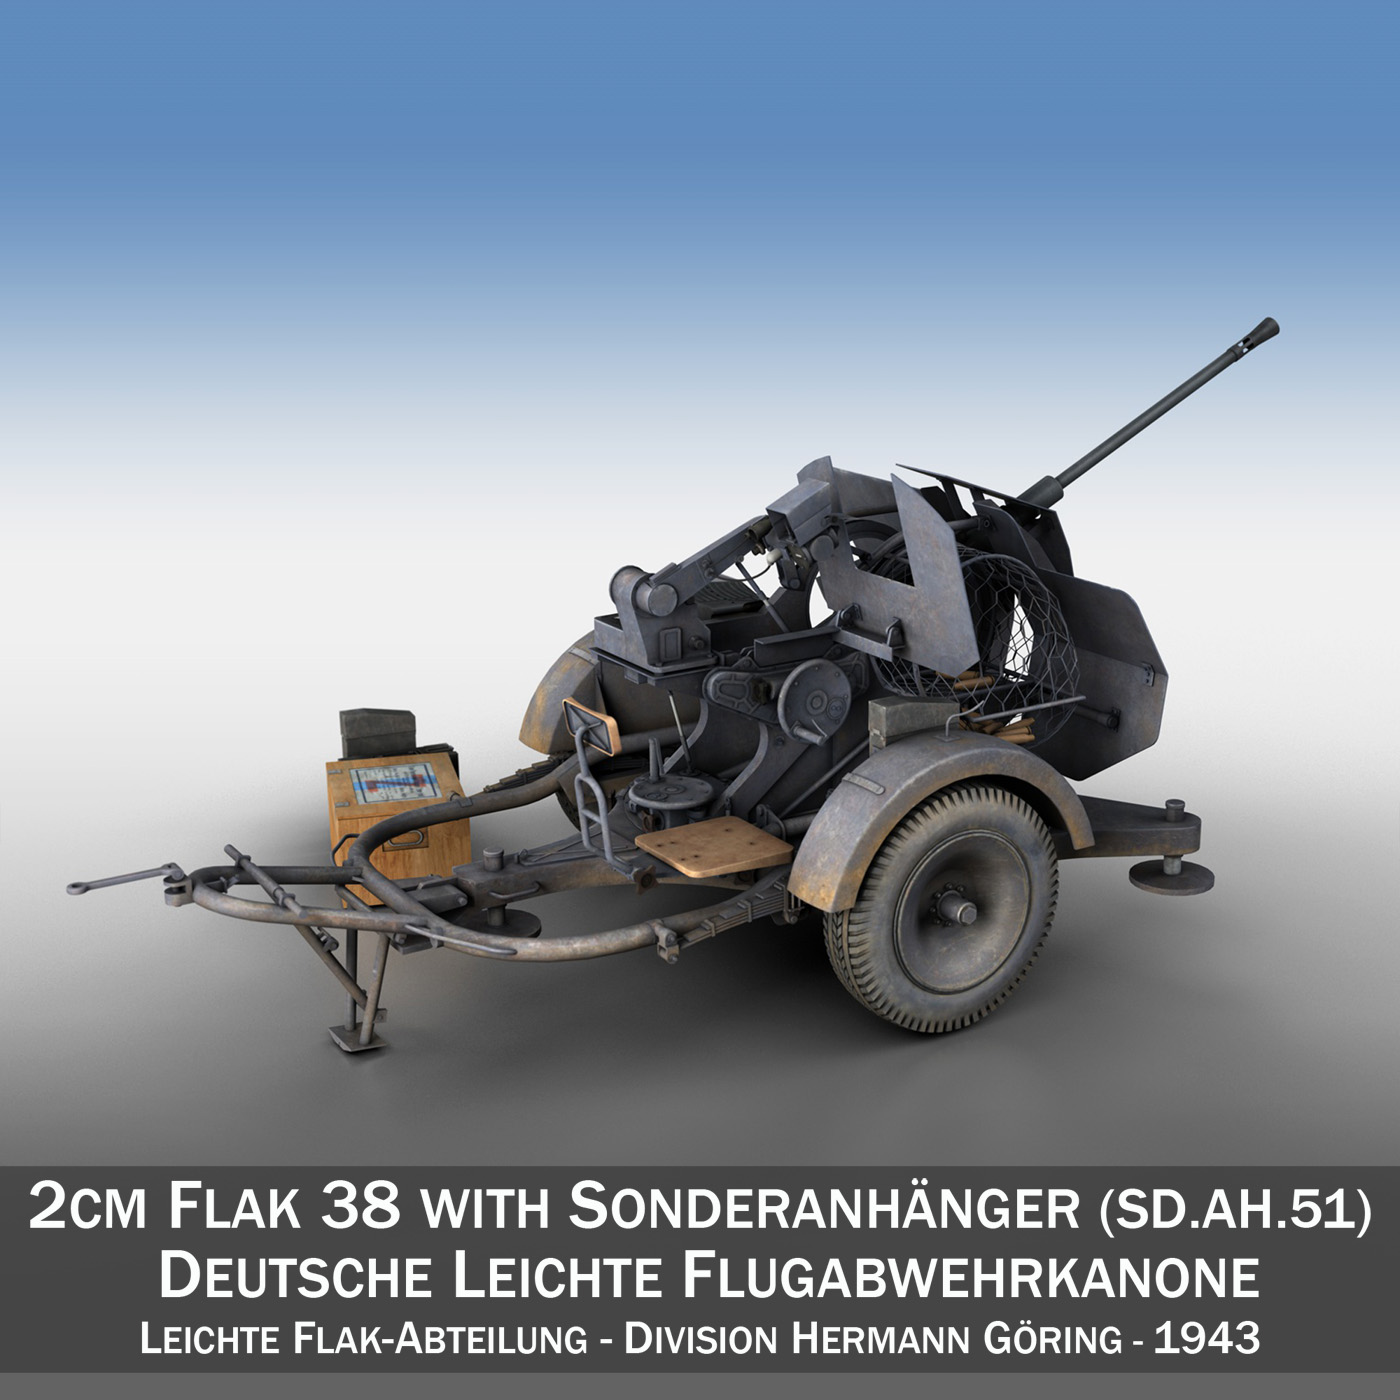 2cm flak 38 with sd.ah 51 – trailer – dhg 3d model 3ds fbx c4d lwo obj 268991